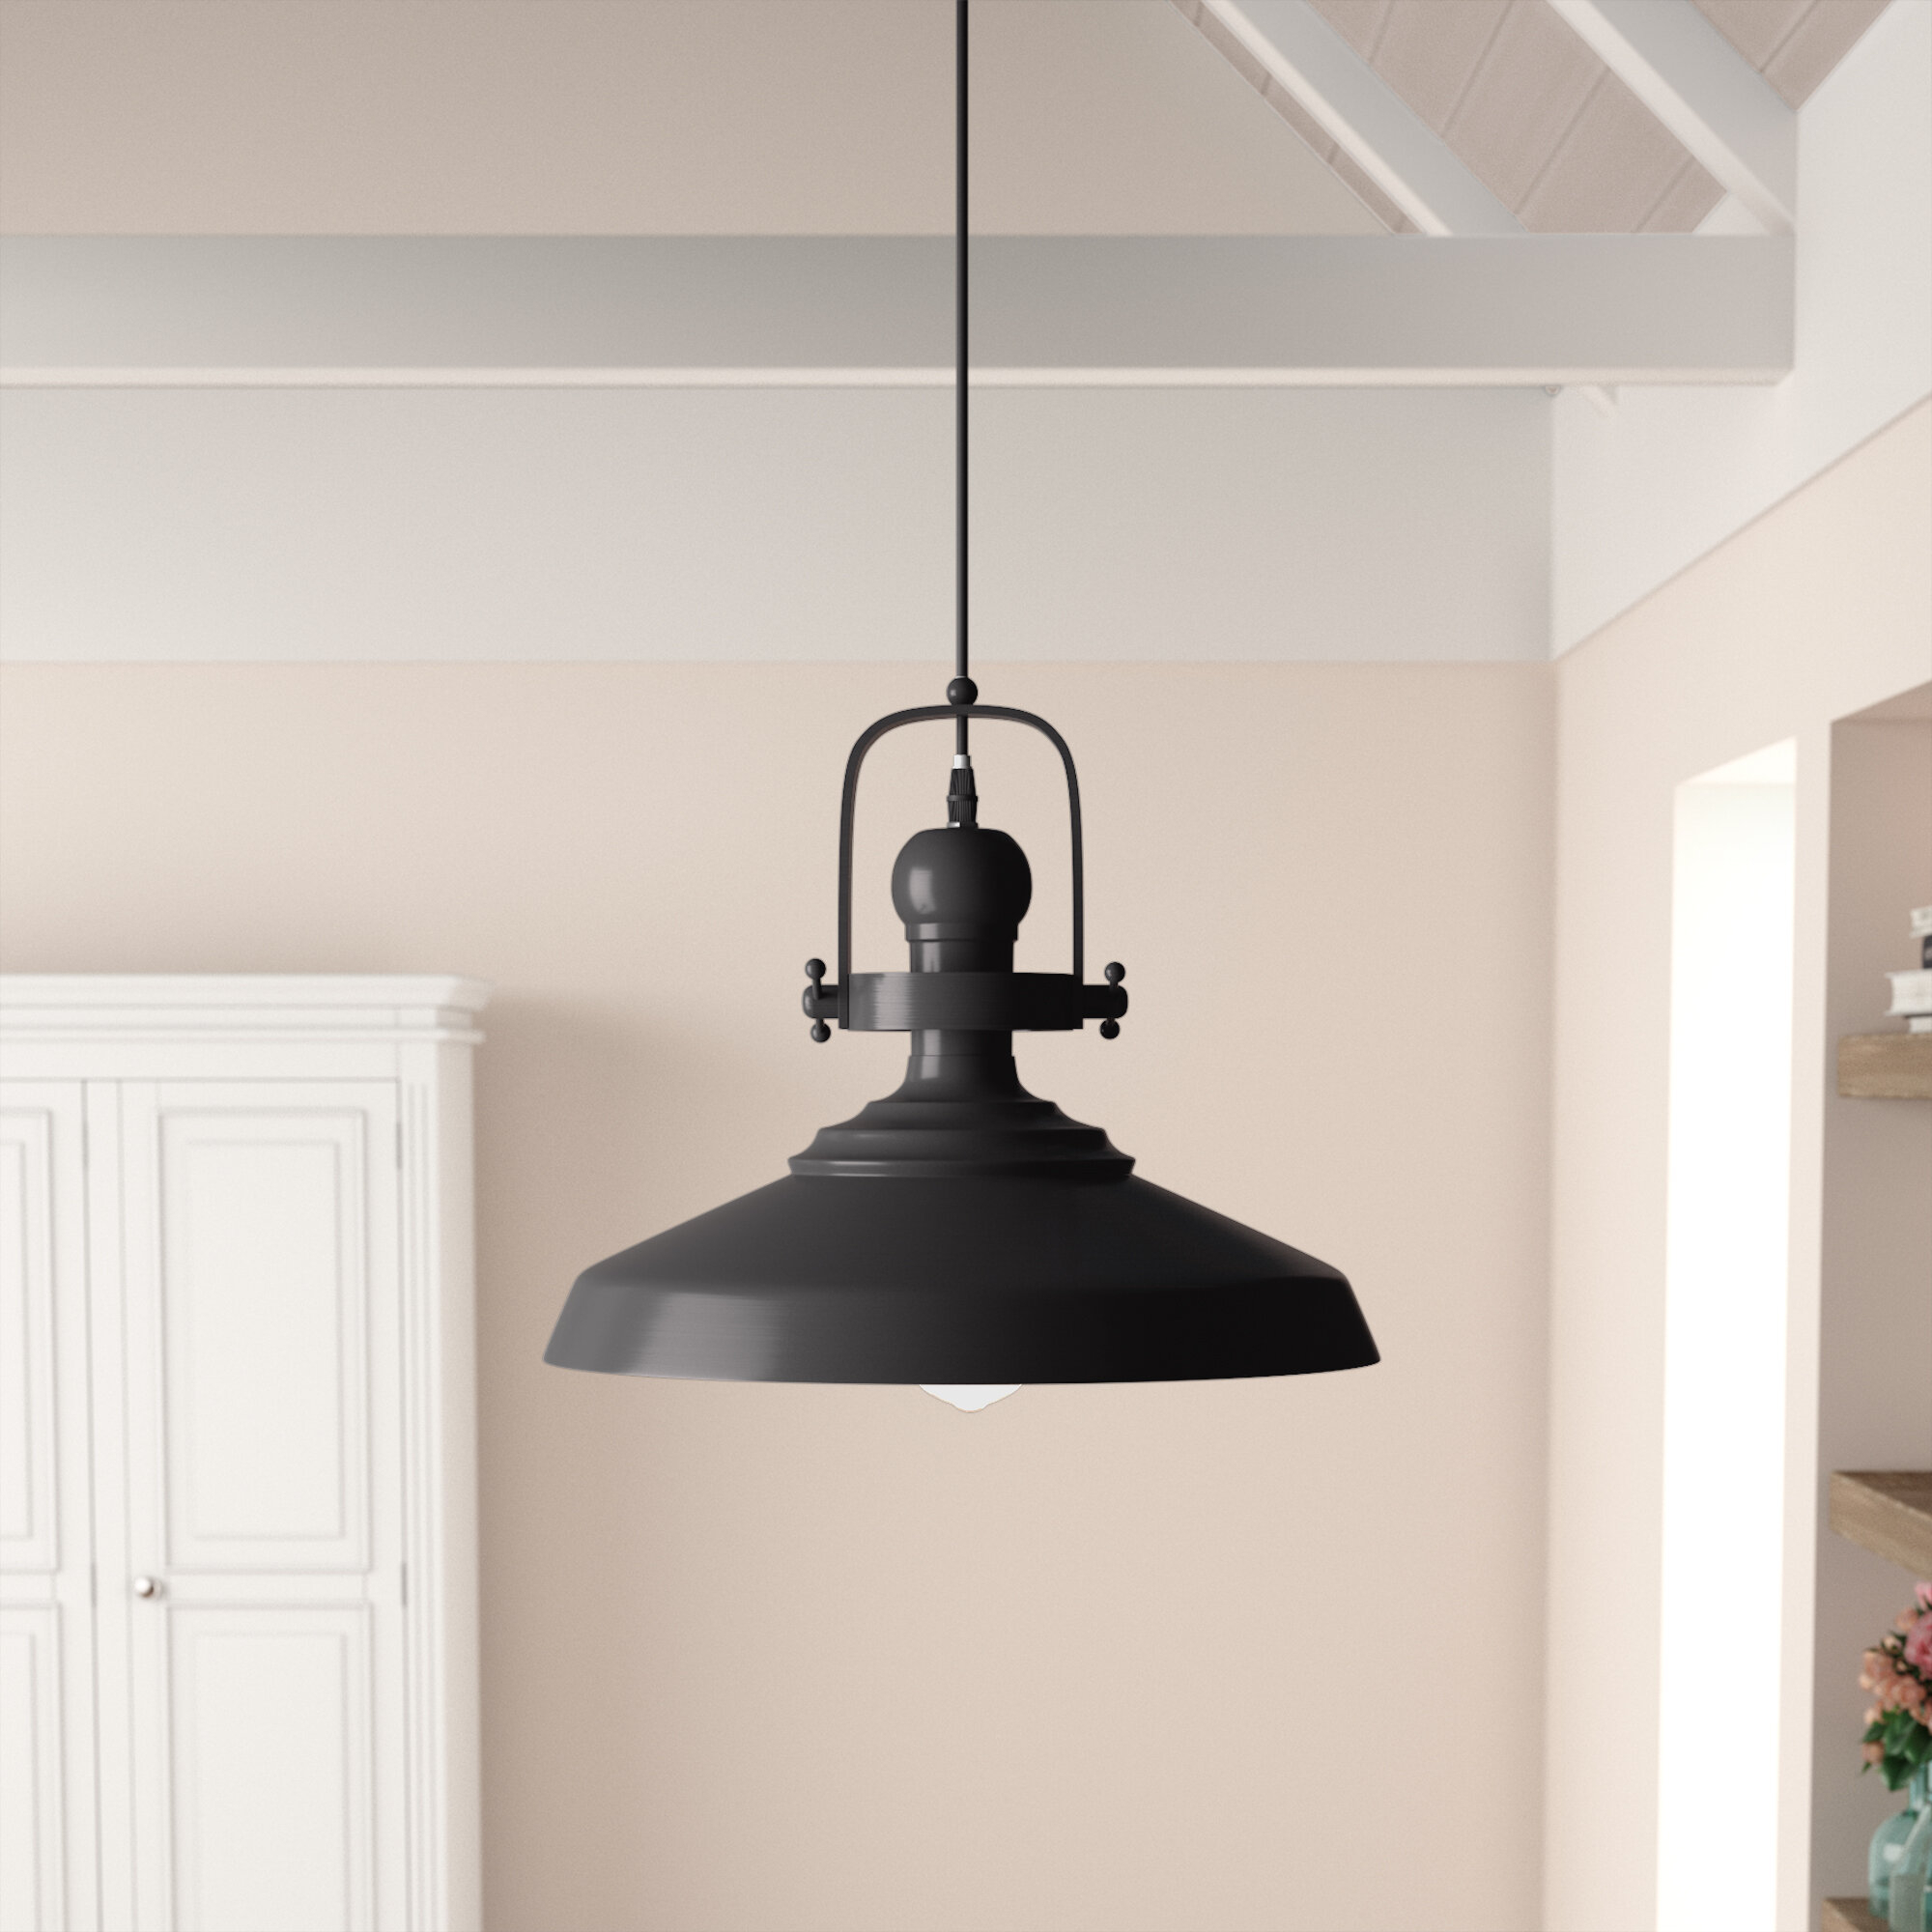 Estelle 1 Light Single Dome Pendant Regarding Proctor 1 Light Bowl Pendants (View 13 of 30)